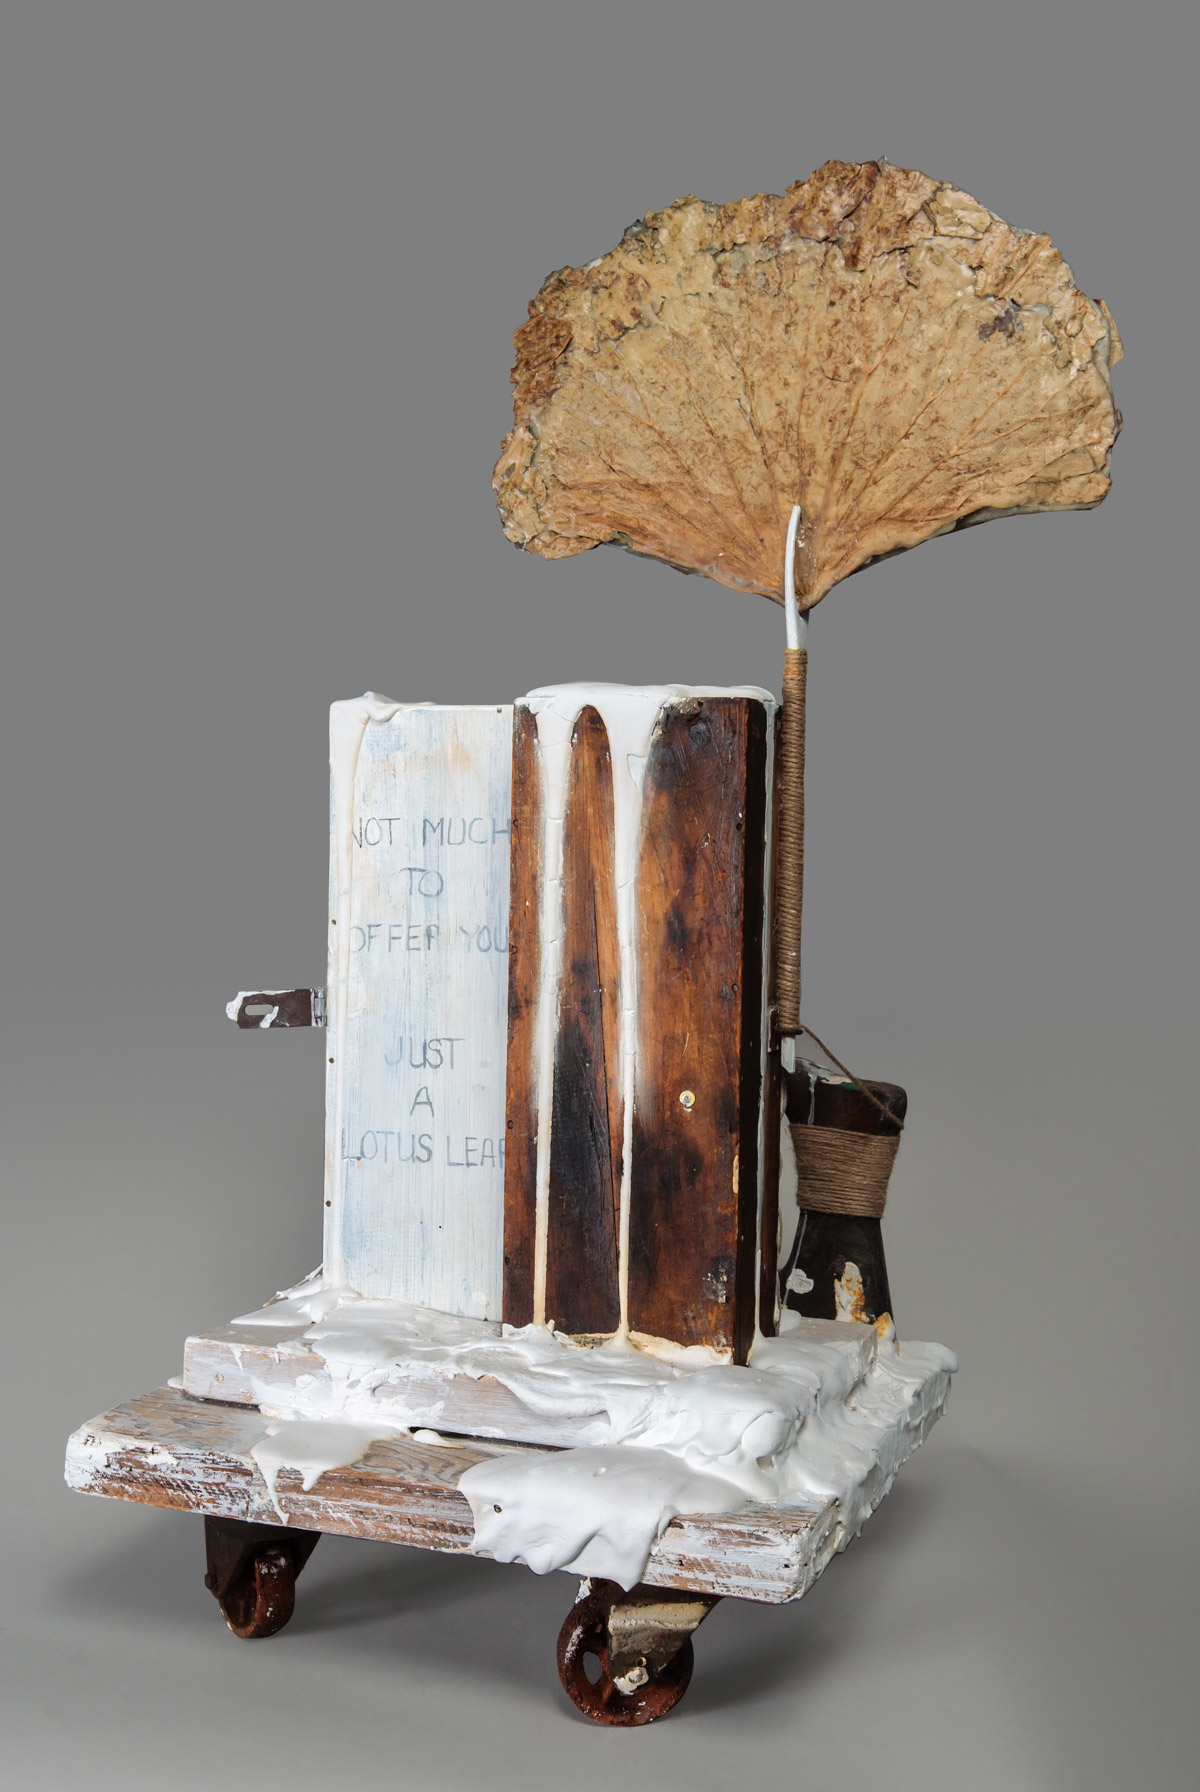 Out of the Earth  (Back)Found objects, burlap, dried plant material, plaster, white paint, encaustic, graphite, twine, glue, and nails 36.5 x 18 x 16.5 in/92.7 x 45.7 x 41.9 cm